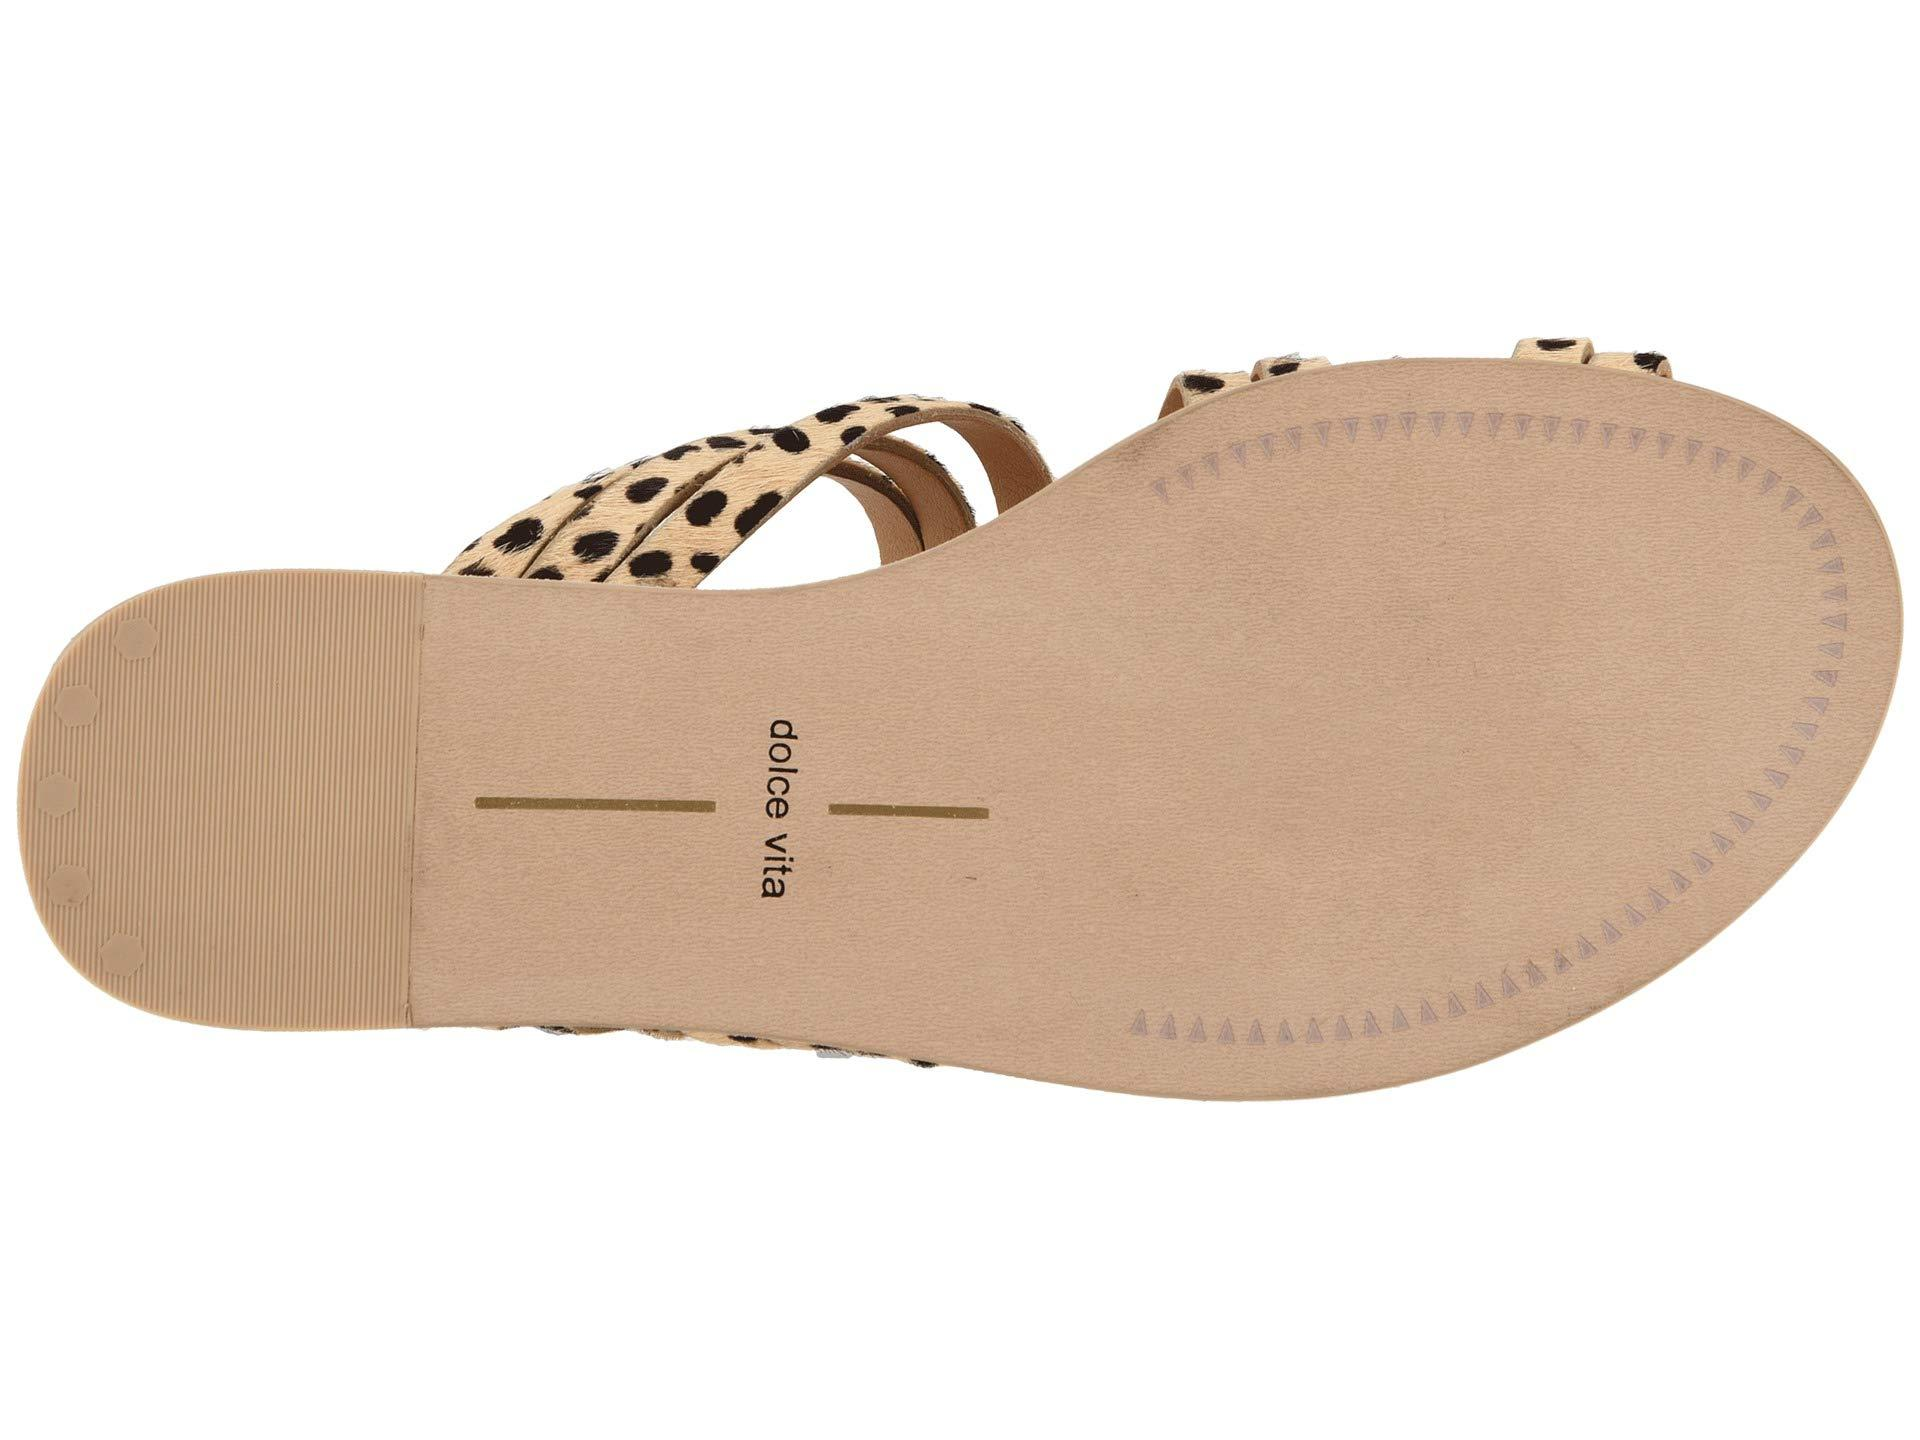 39a55796390fe Lyst - Dolce Vita Nelly (white Multi Leather) Women s Sandals in Brown